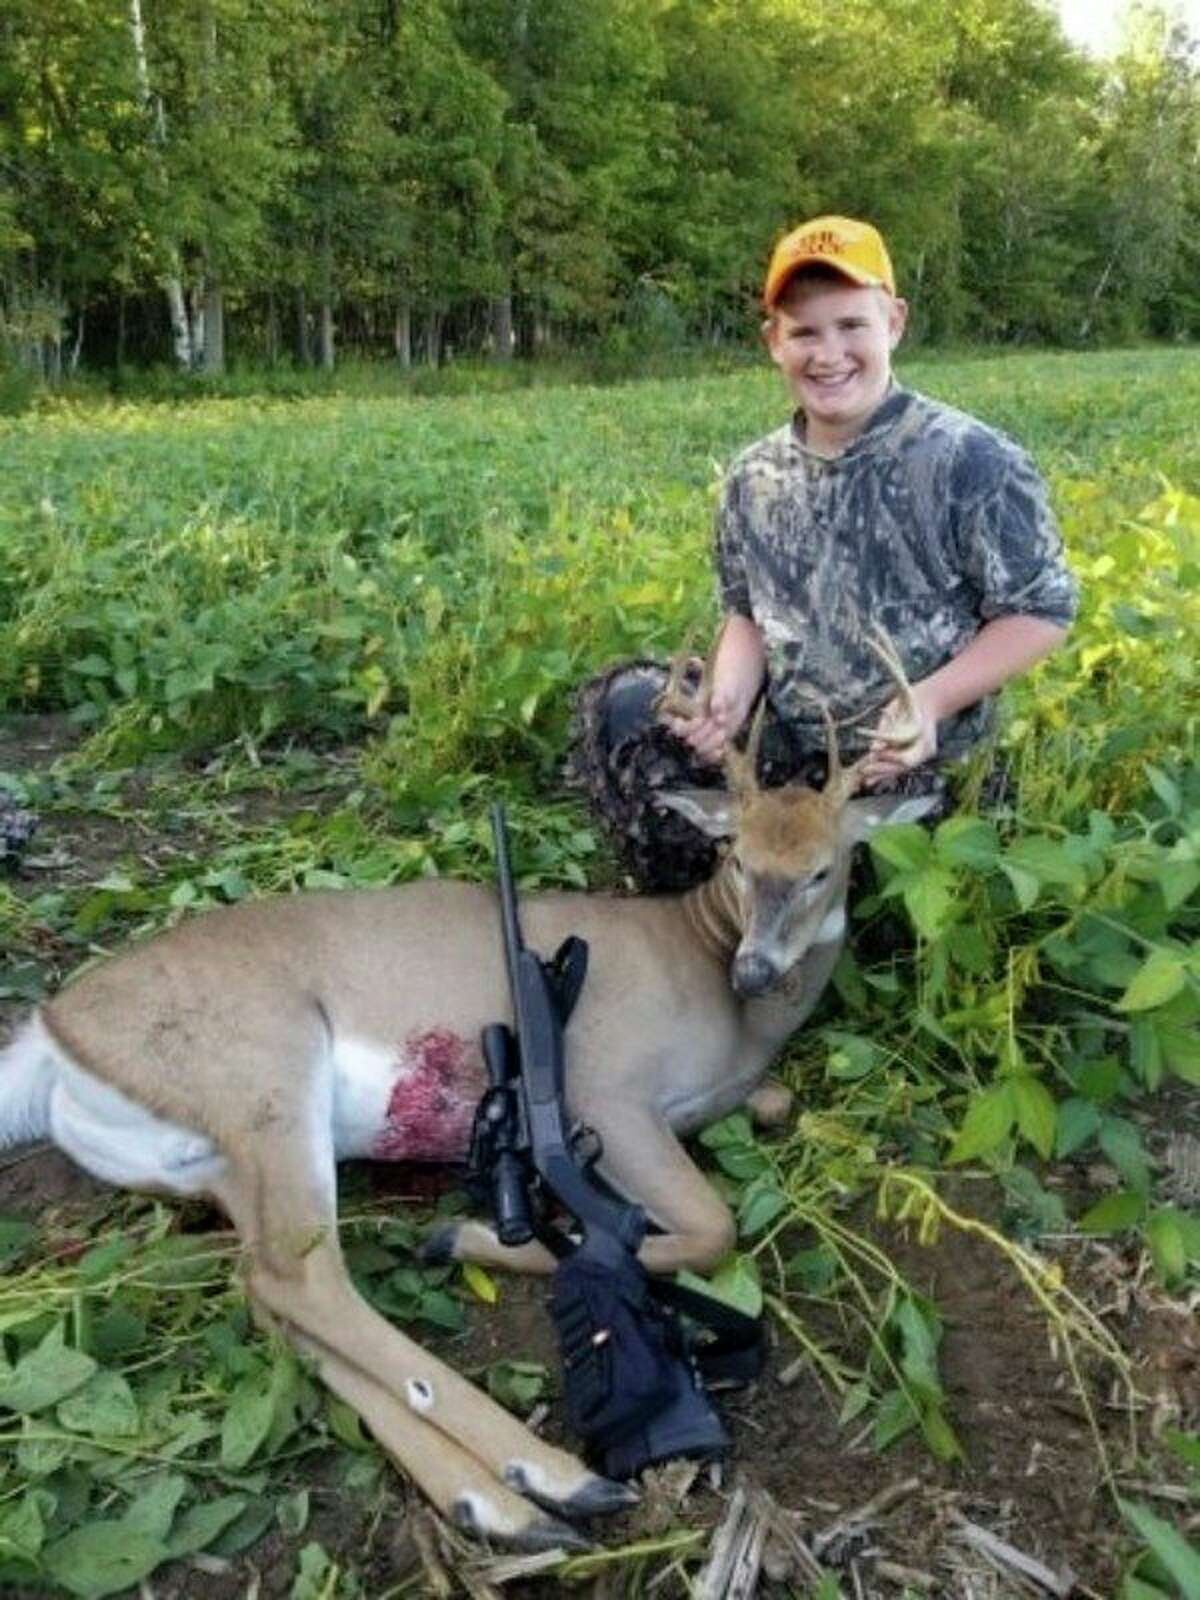 Noah Braun, 14, poses for a photo with a 9-point buck he recently shot. (Brian Braun/Courtesy Photo)